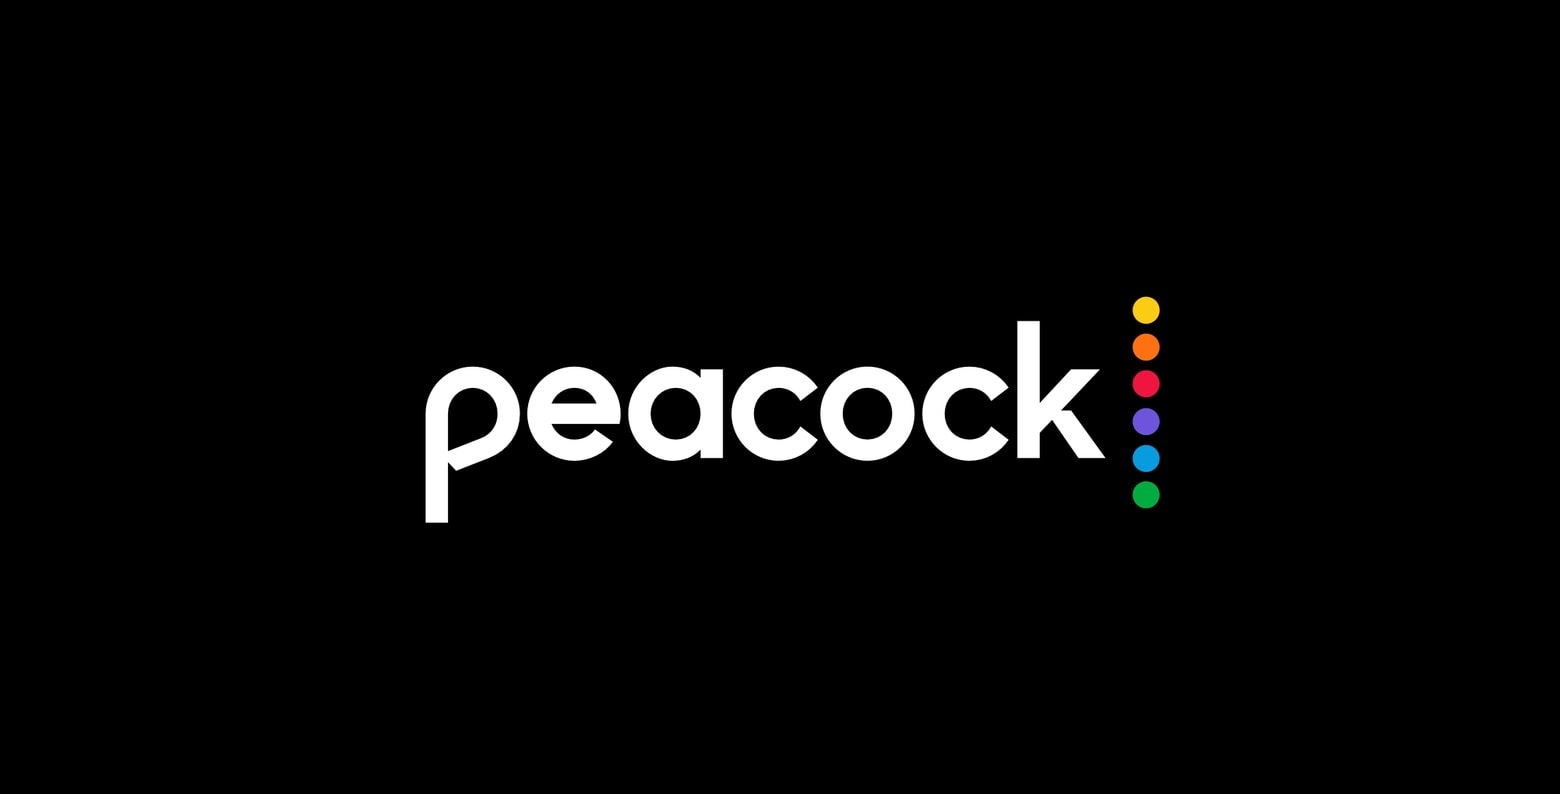 Peacock from NBCUniversal